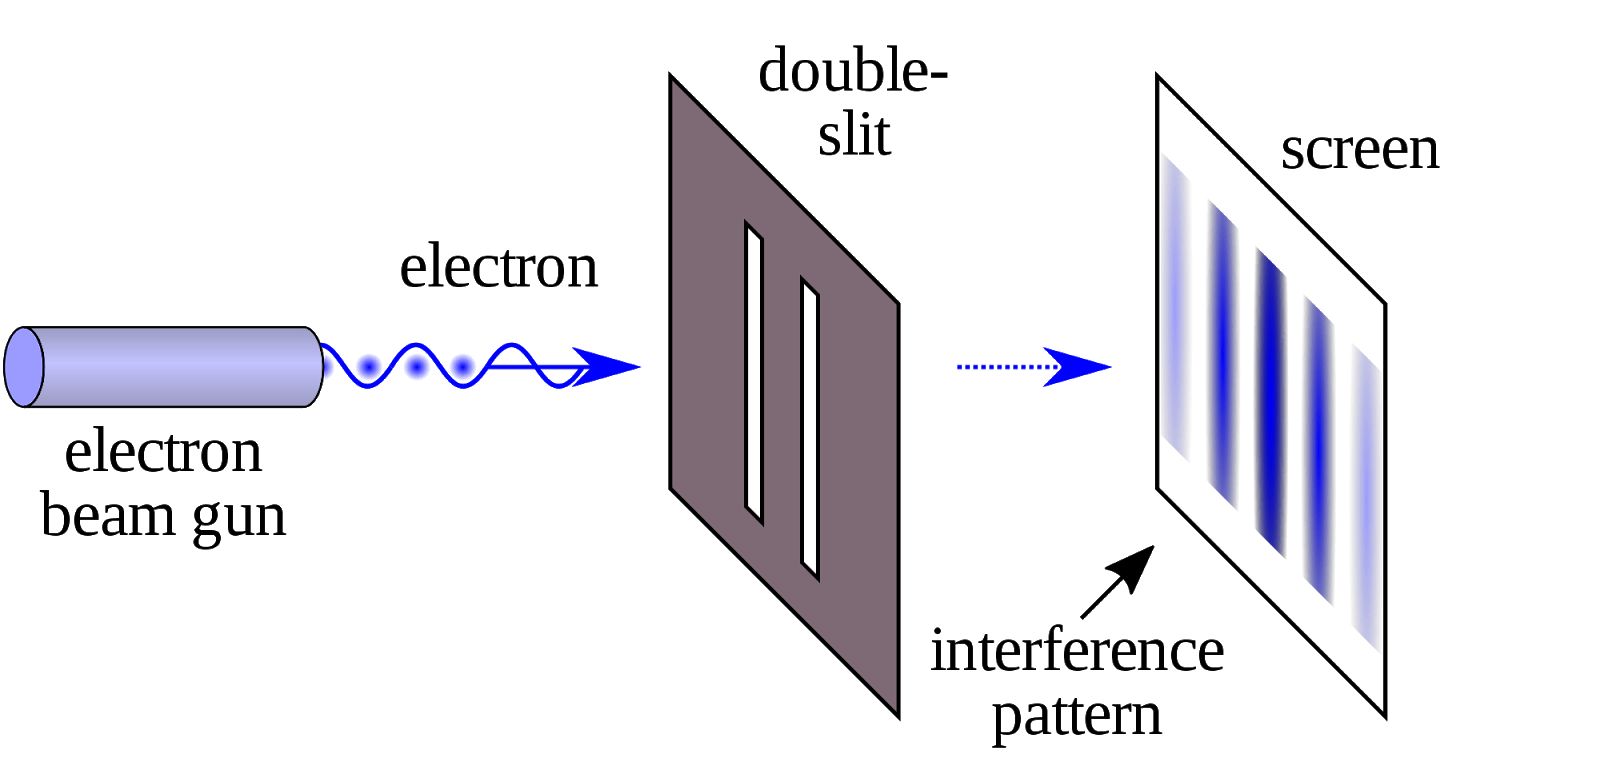 hight resolution of 1 2 kalliauer johannes an illustration of the double slit experiment in physics wikipedia 5